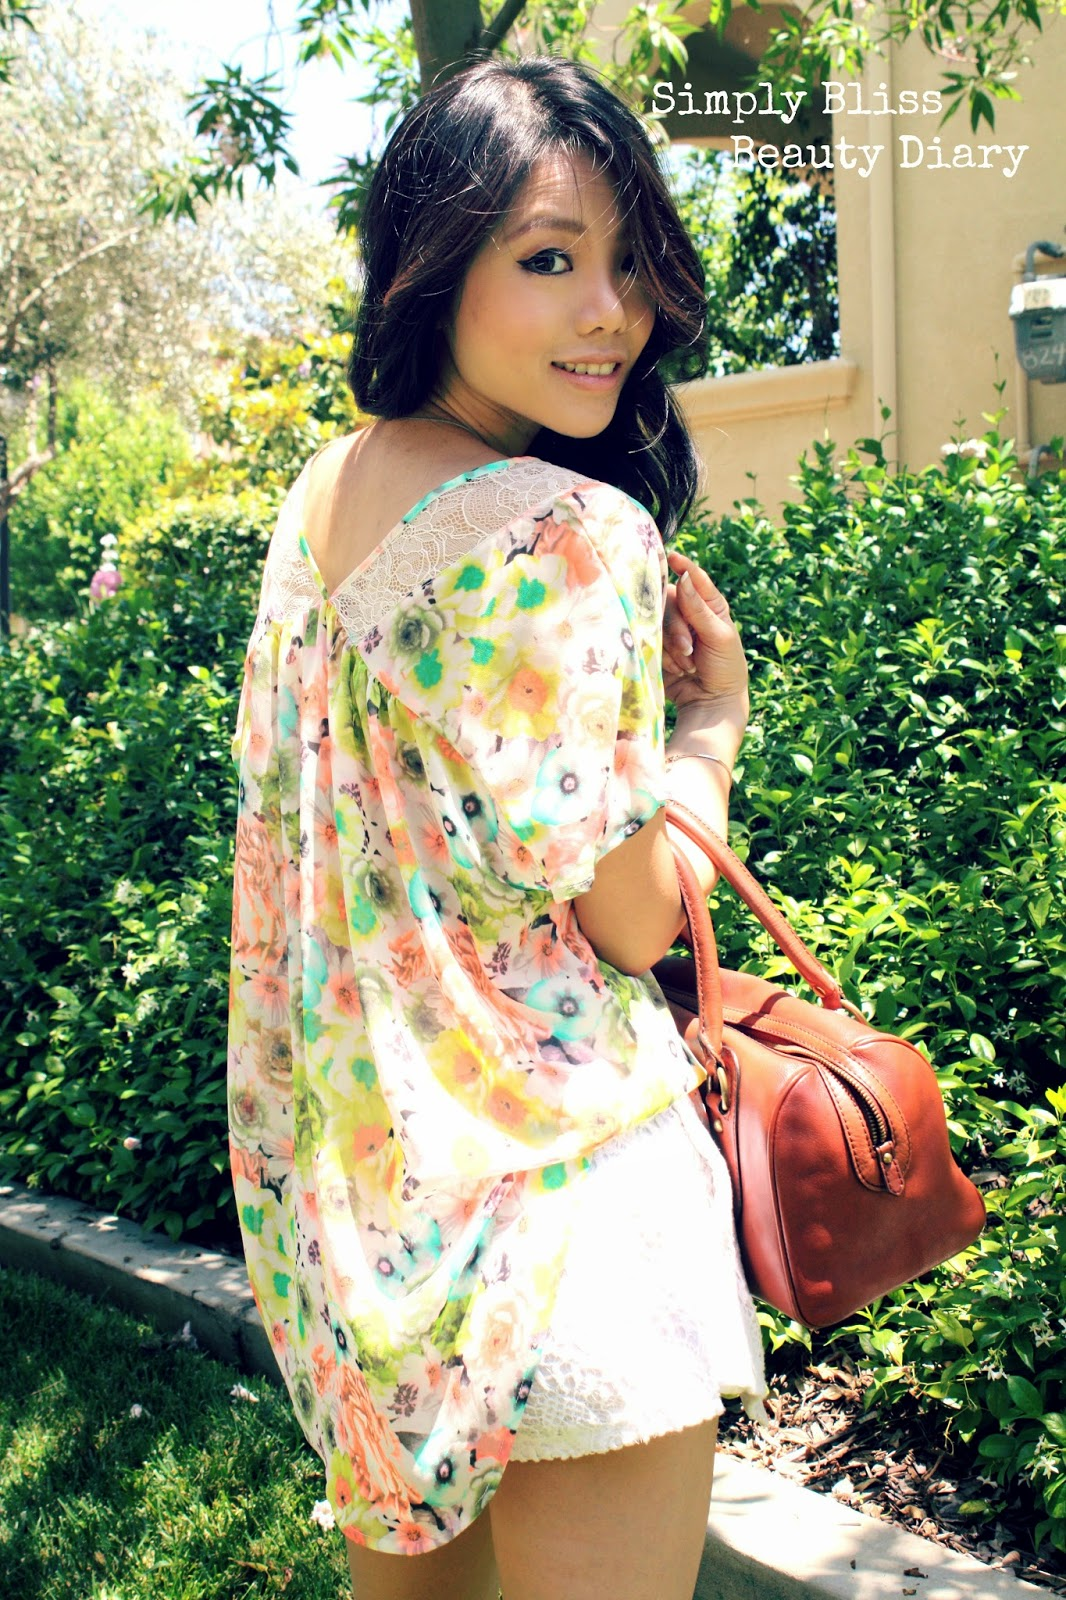 ASTR floral lace top and zara like shorts for spring with banana republic satchel and Paolo Bentini Sardinia Sandlal